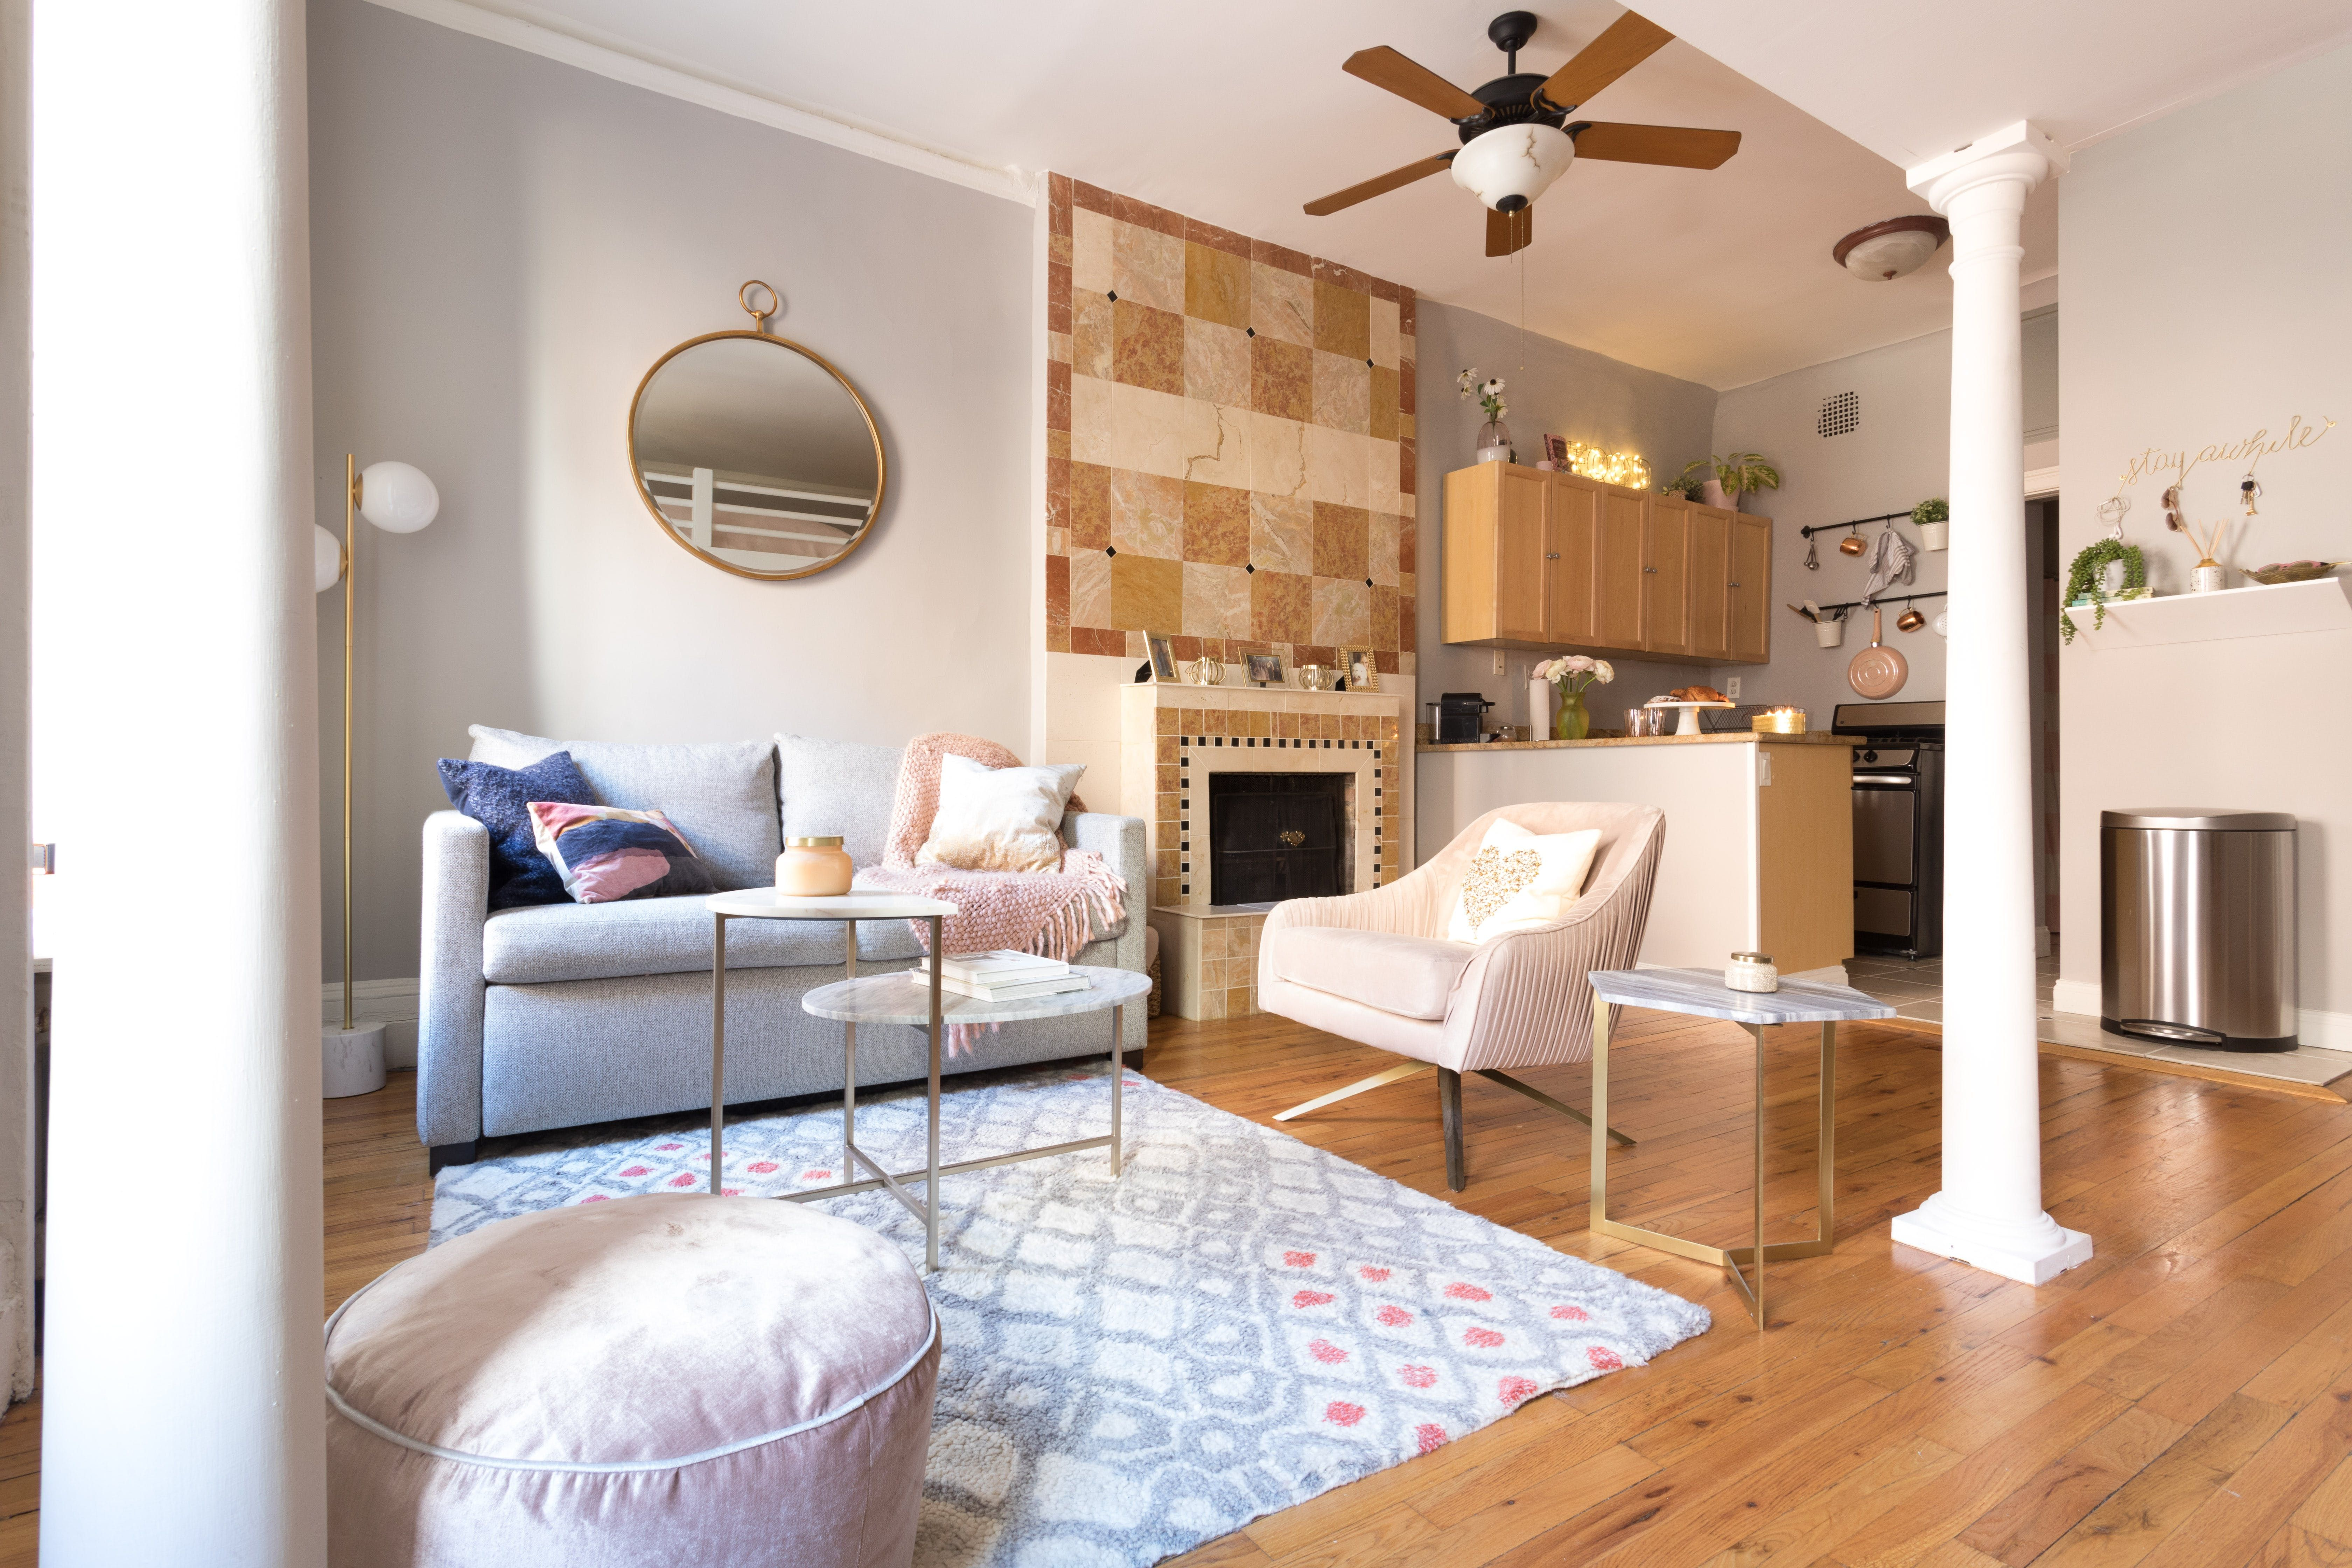 A 325SquareFoot NYC Studio Is Cute and Sophisticated